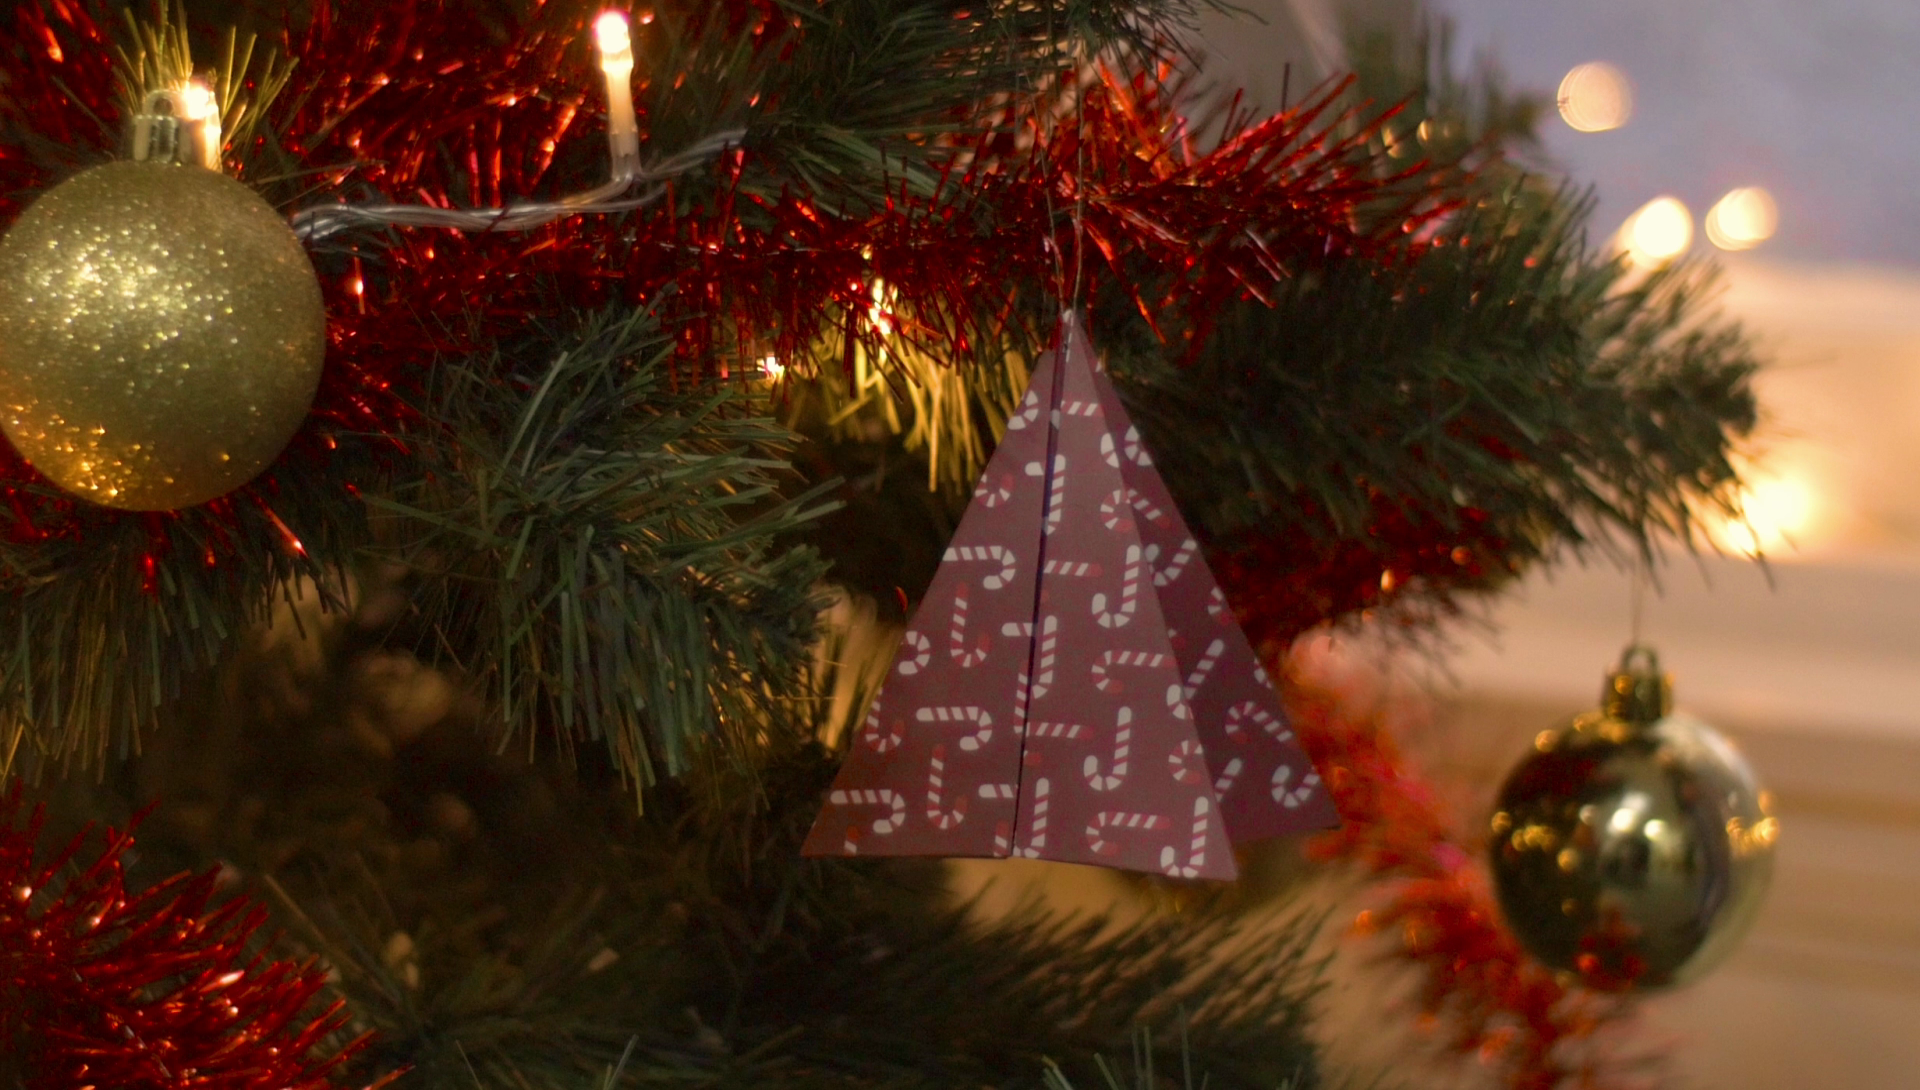 25 Days of Christmas - Have A Totally Unique Christmas With These DIY Tree Decorations - 1016